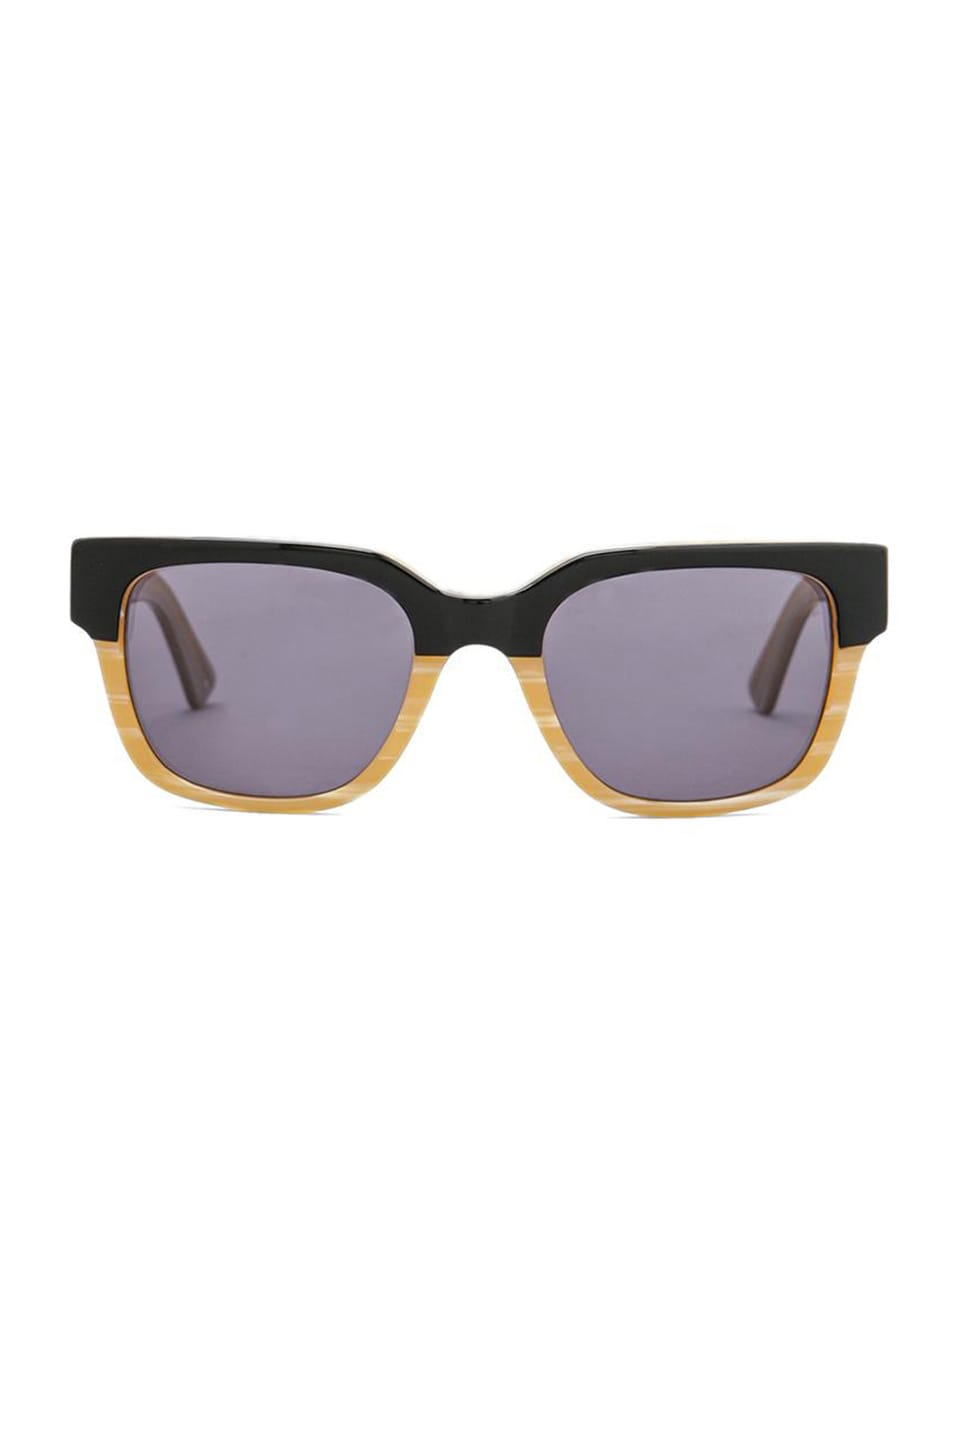 RAEN Garwood Sunglass in Froth